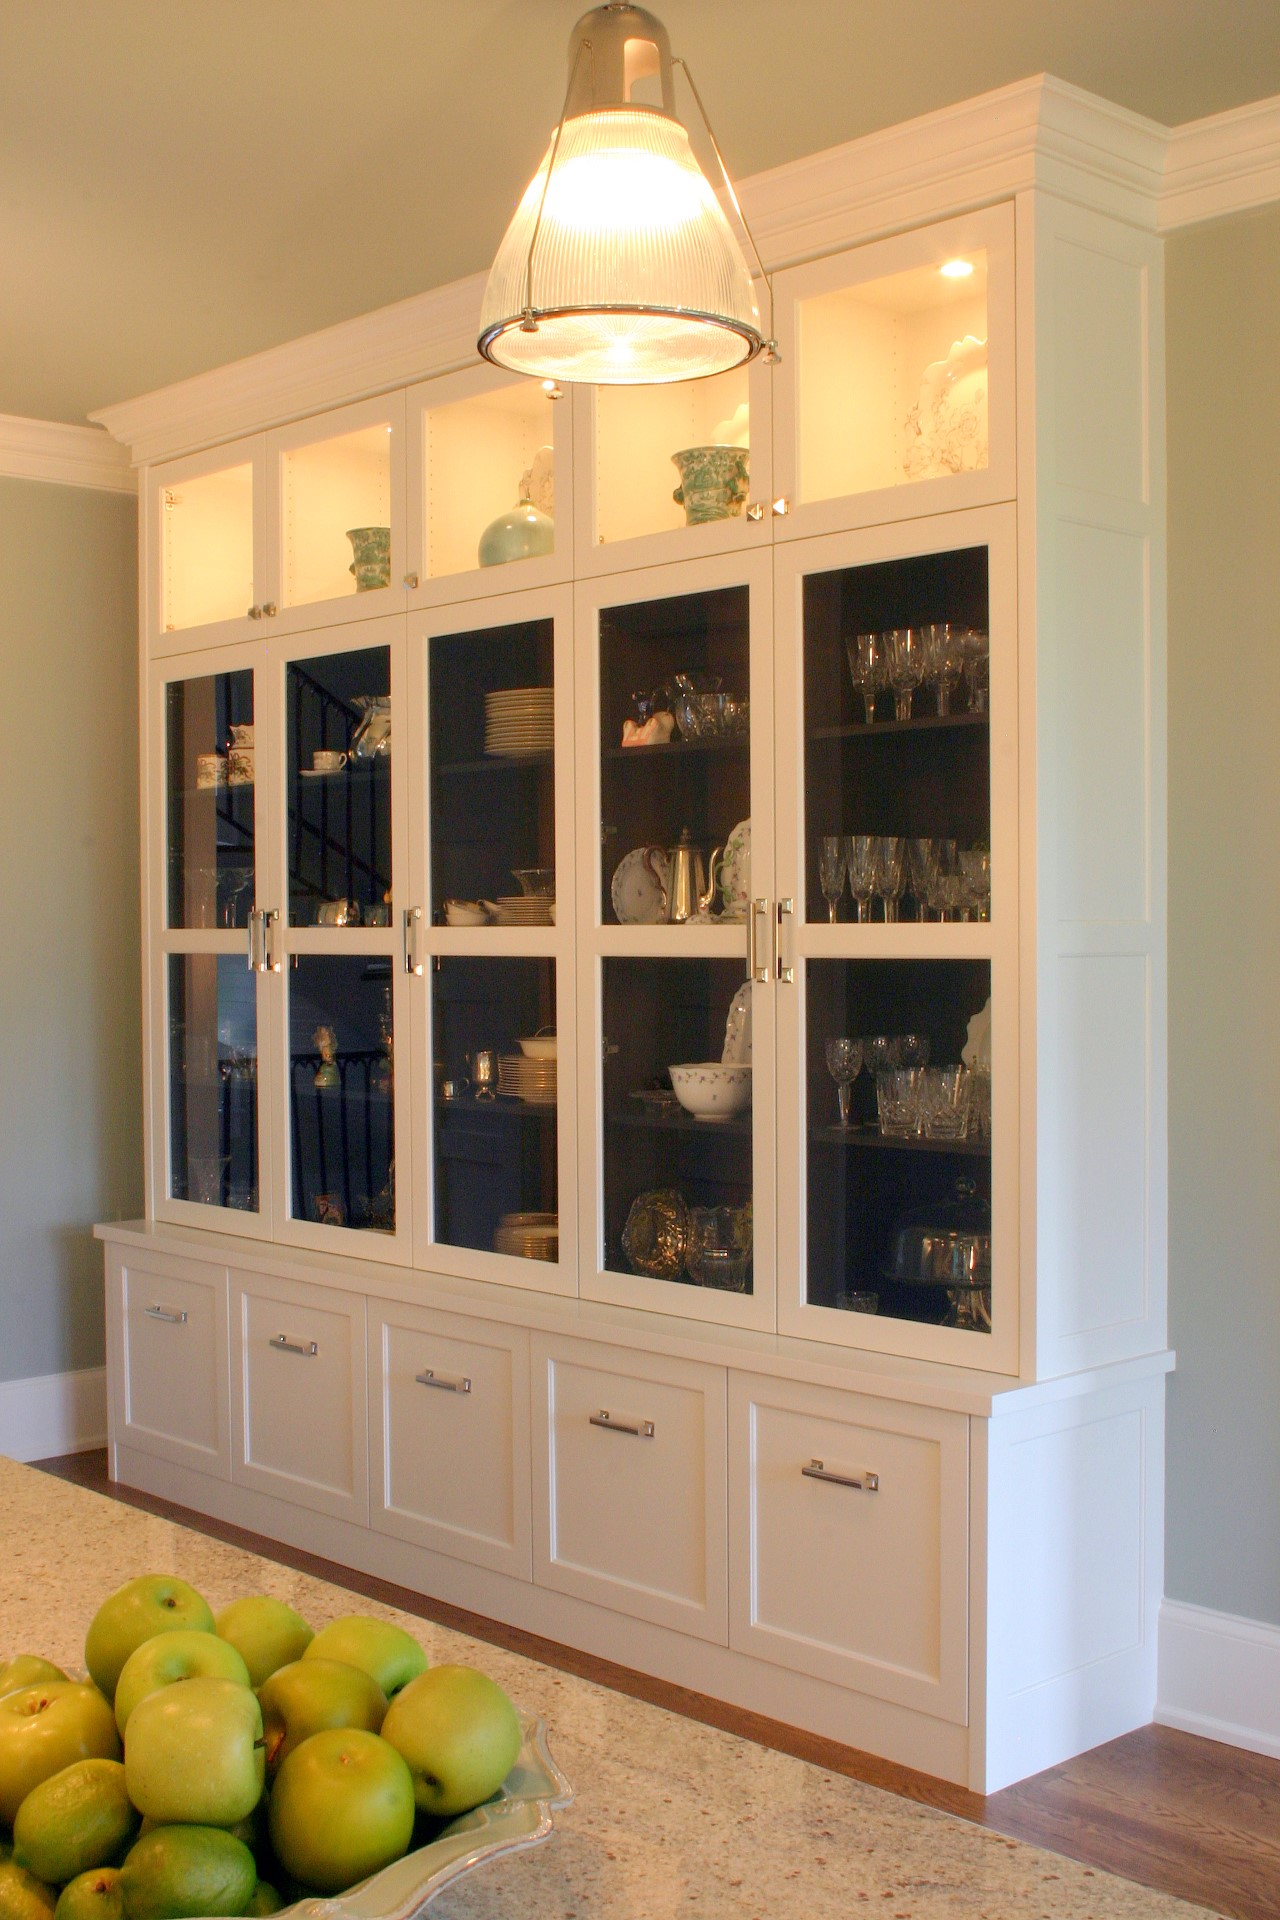 Wellington Park Painted Kitchen Butlers Pantry